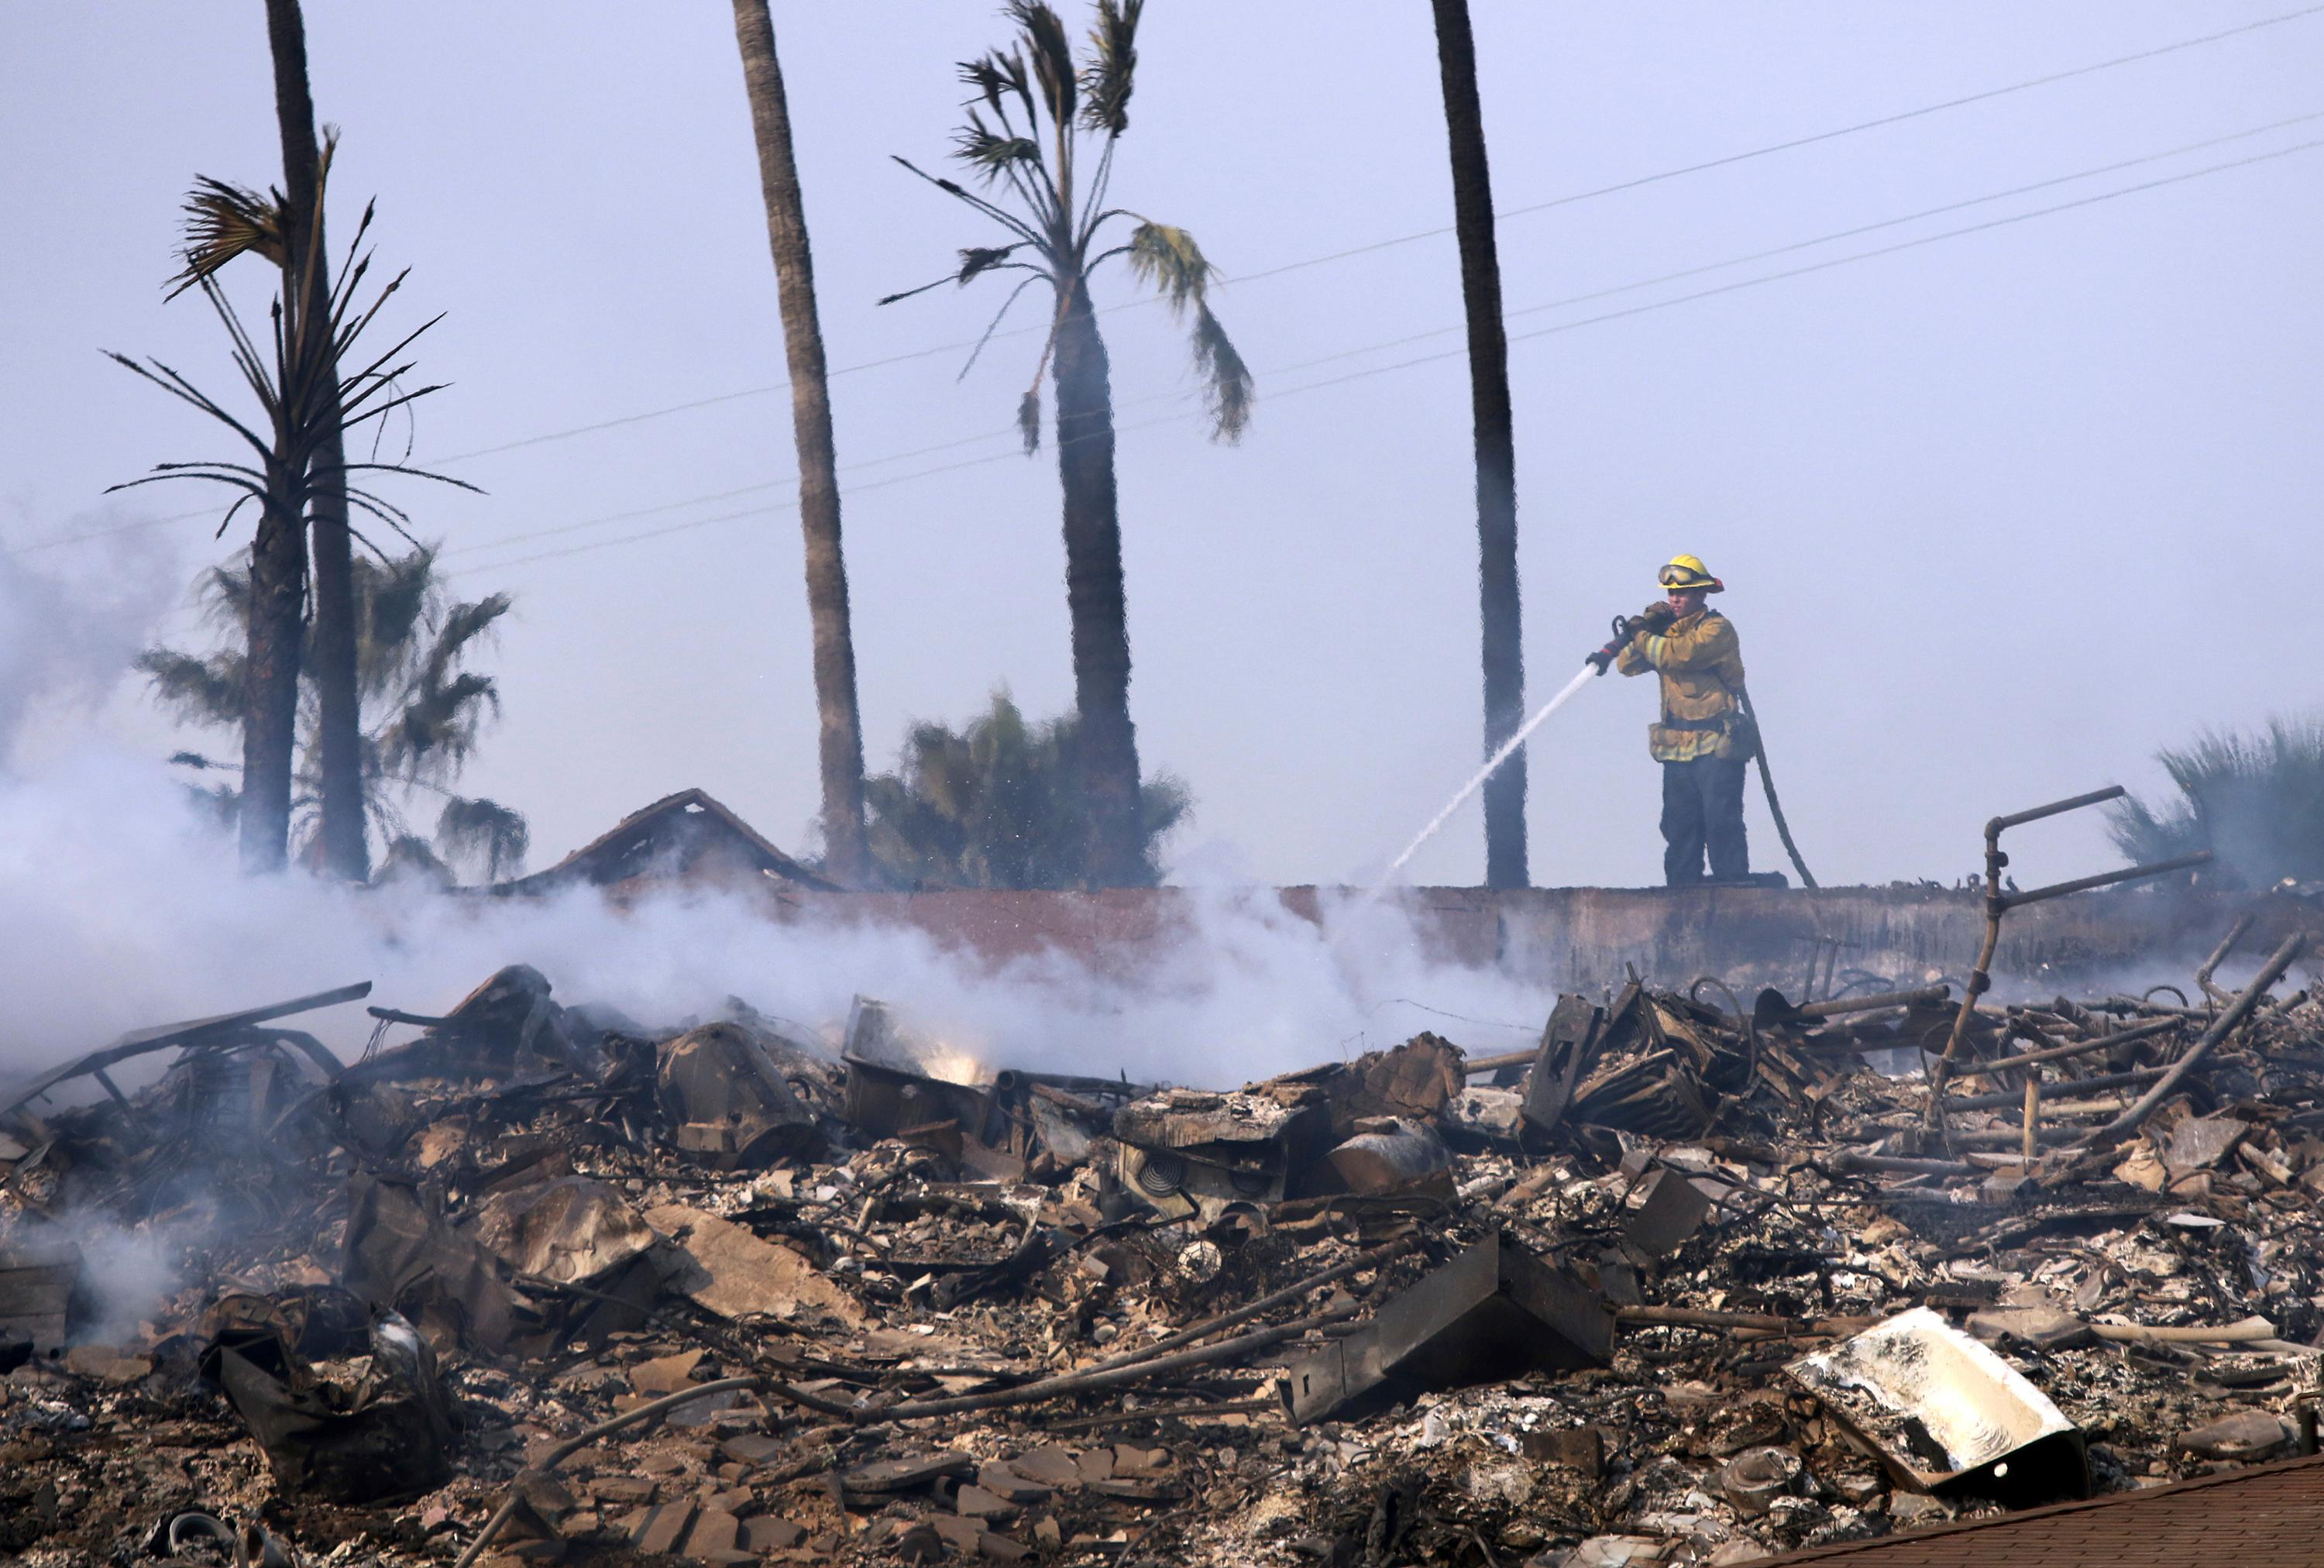 A firefighter hoses down the remains of a destroyed home after the Thomas fire swept through Ventura, Calif., Tuesday, Dec. 5, 2017. (Daniel Dreifuss via AP)